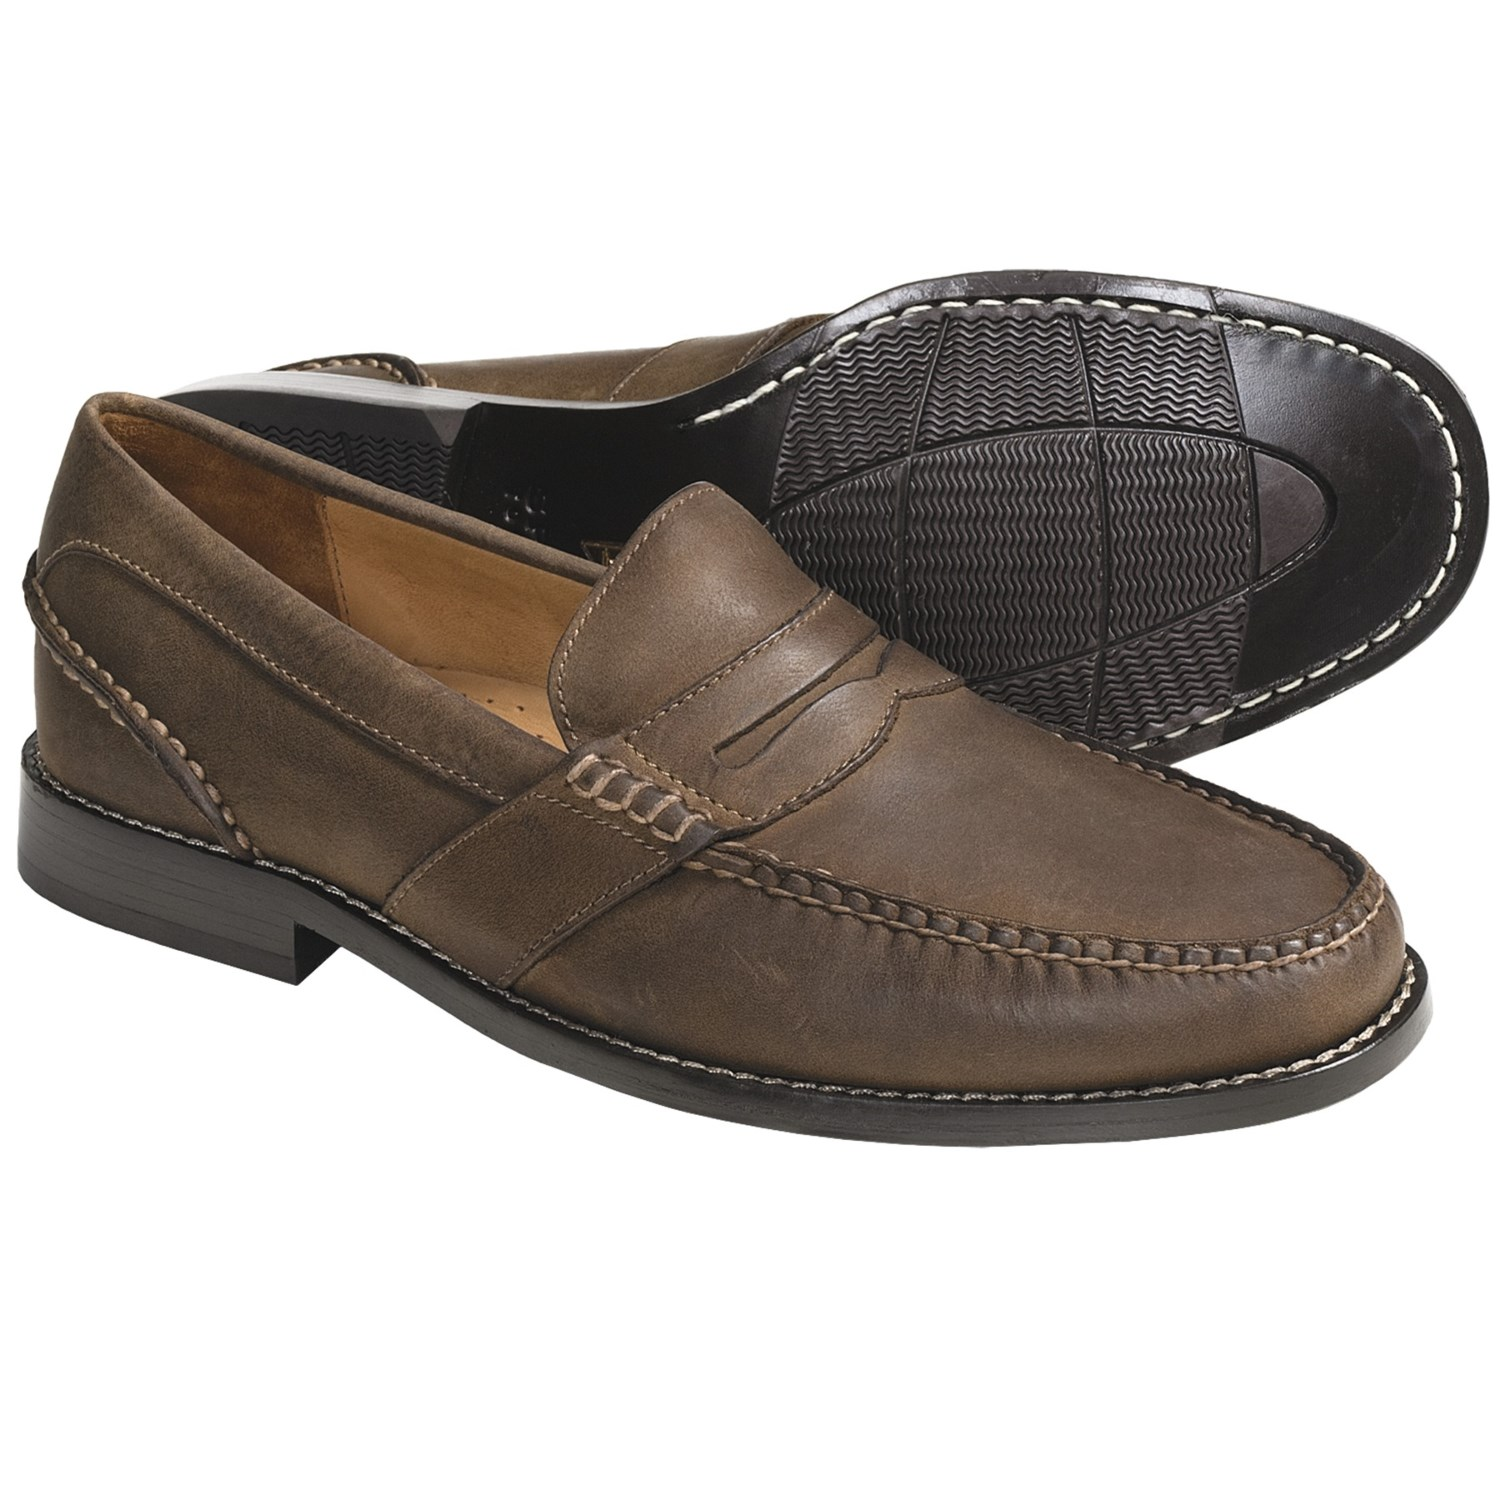 Sperry Leather Penny Loafer Shoes (For Men) 4047V